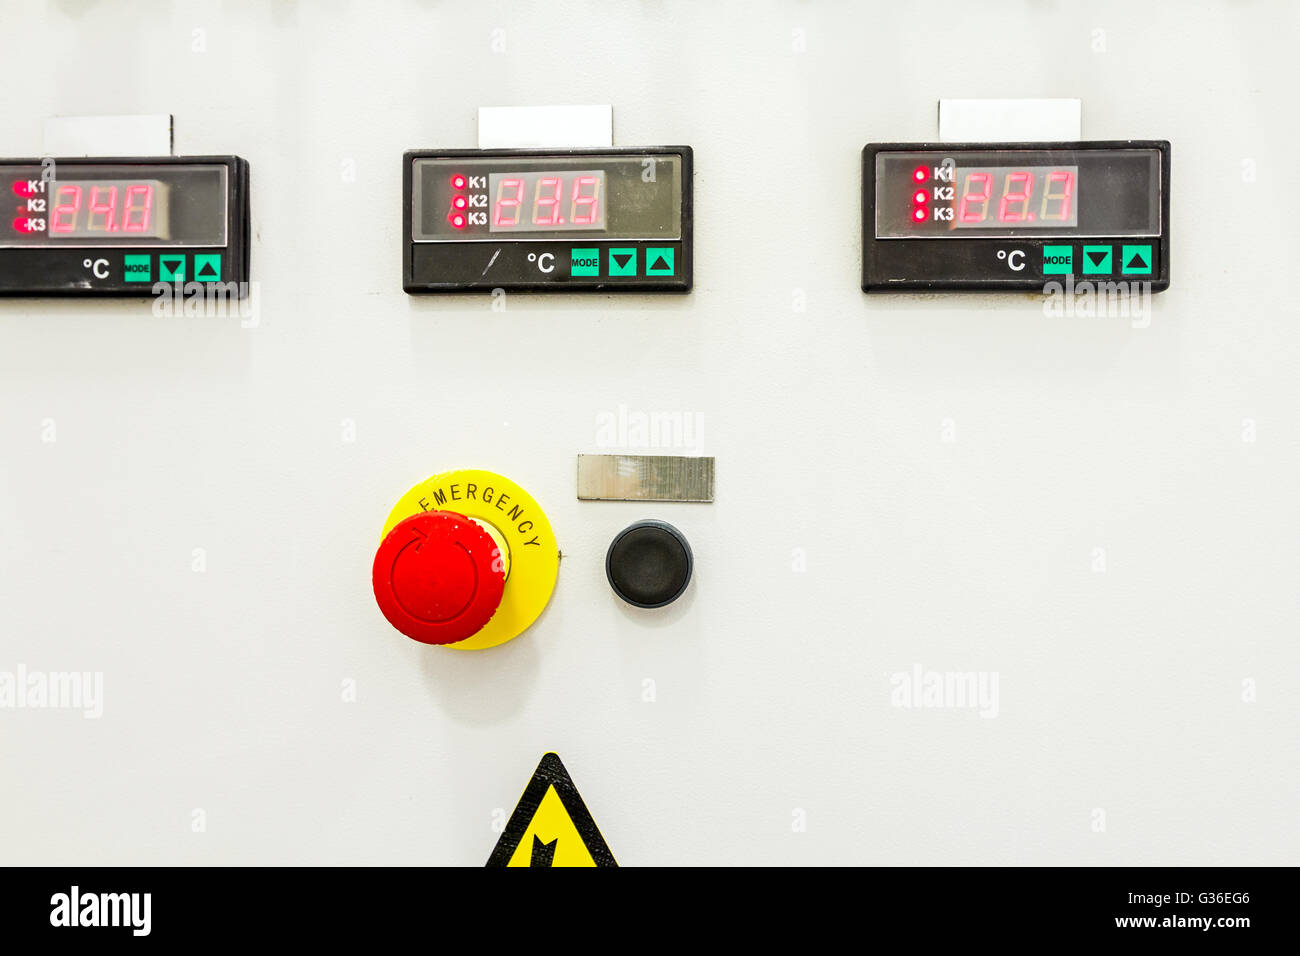 Electrical control panel containing has a digital temperature gauge with warning sticker and an emergency shutdown - Stock Image